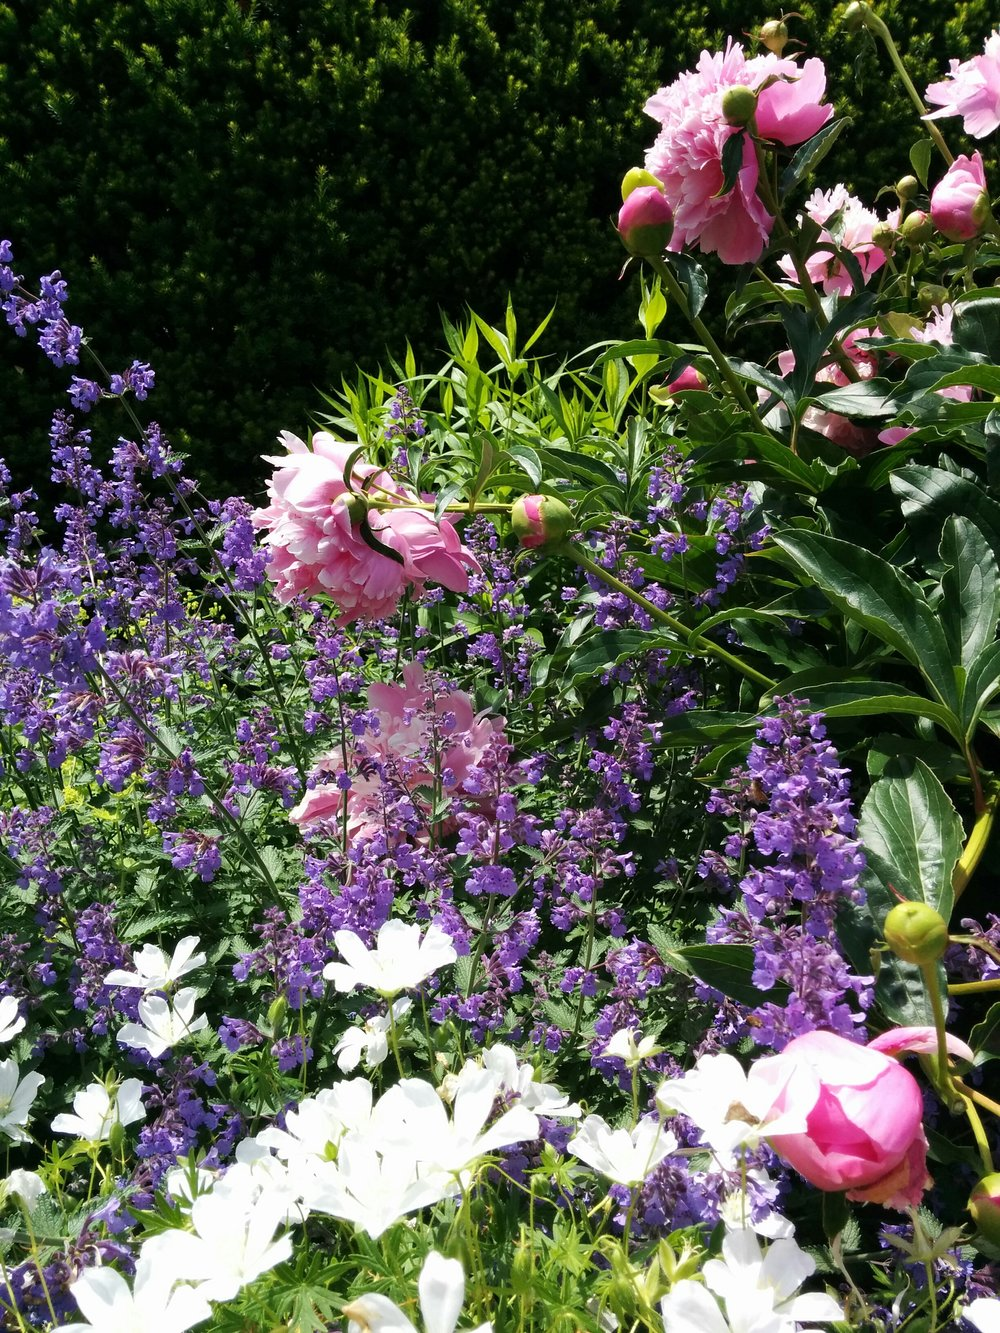 Perennial Garden With Peony, Catmint, and Cosmos